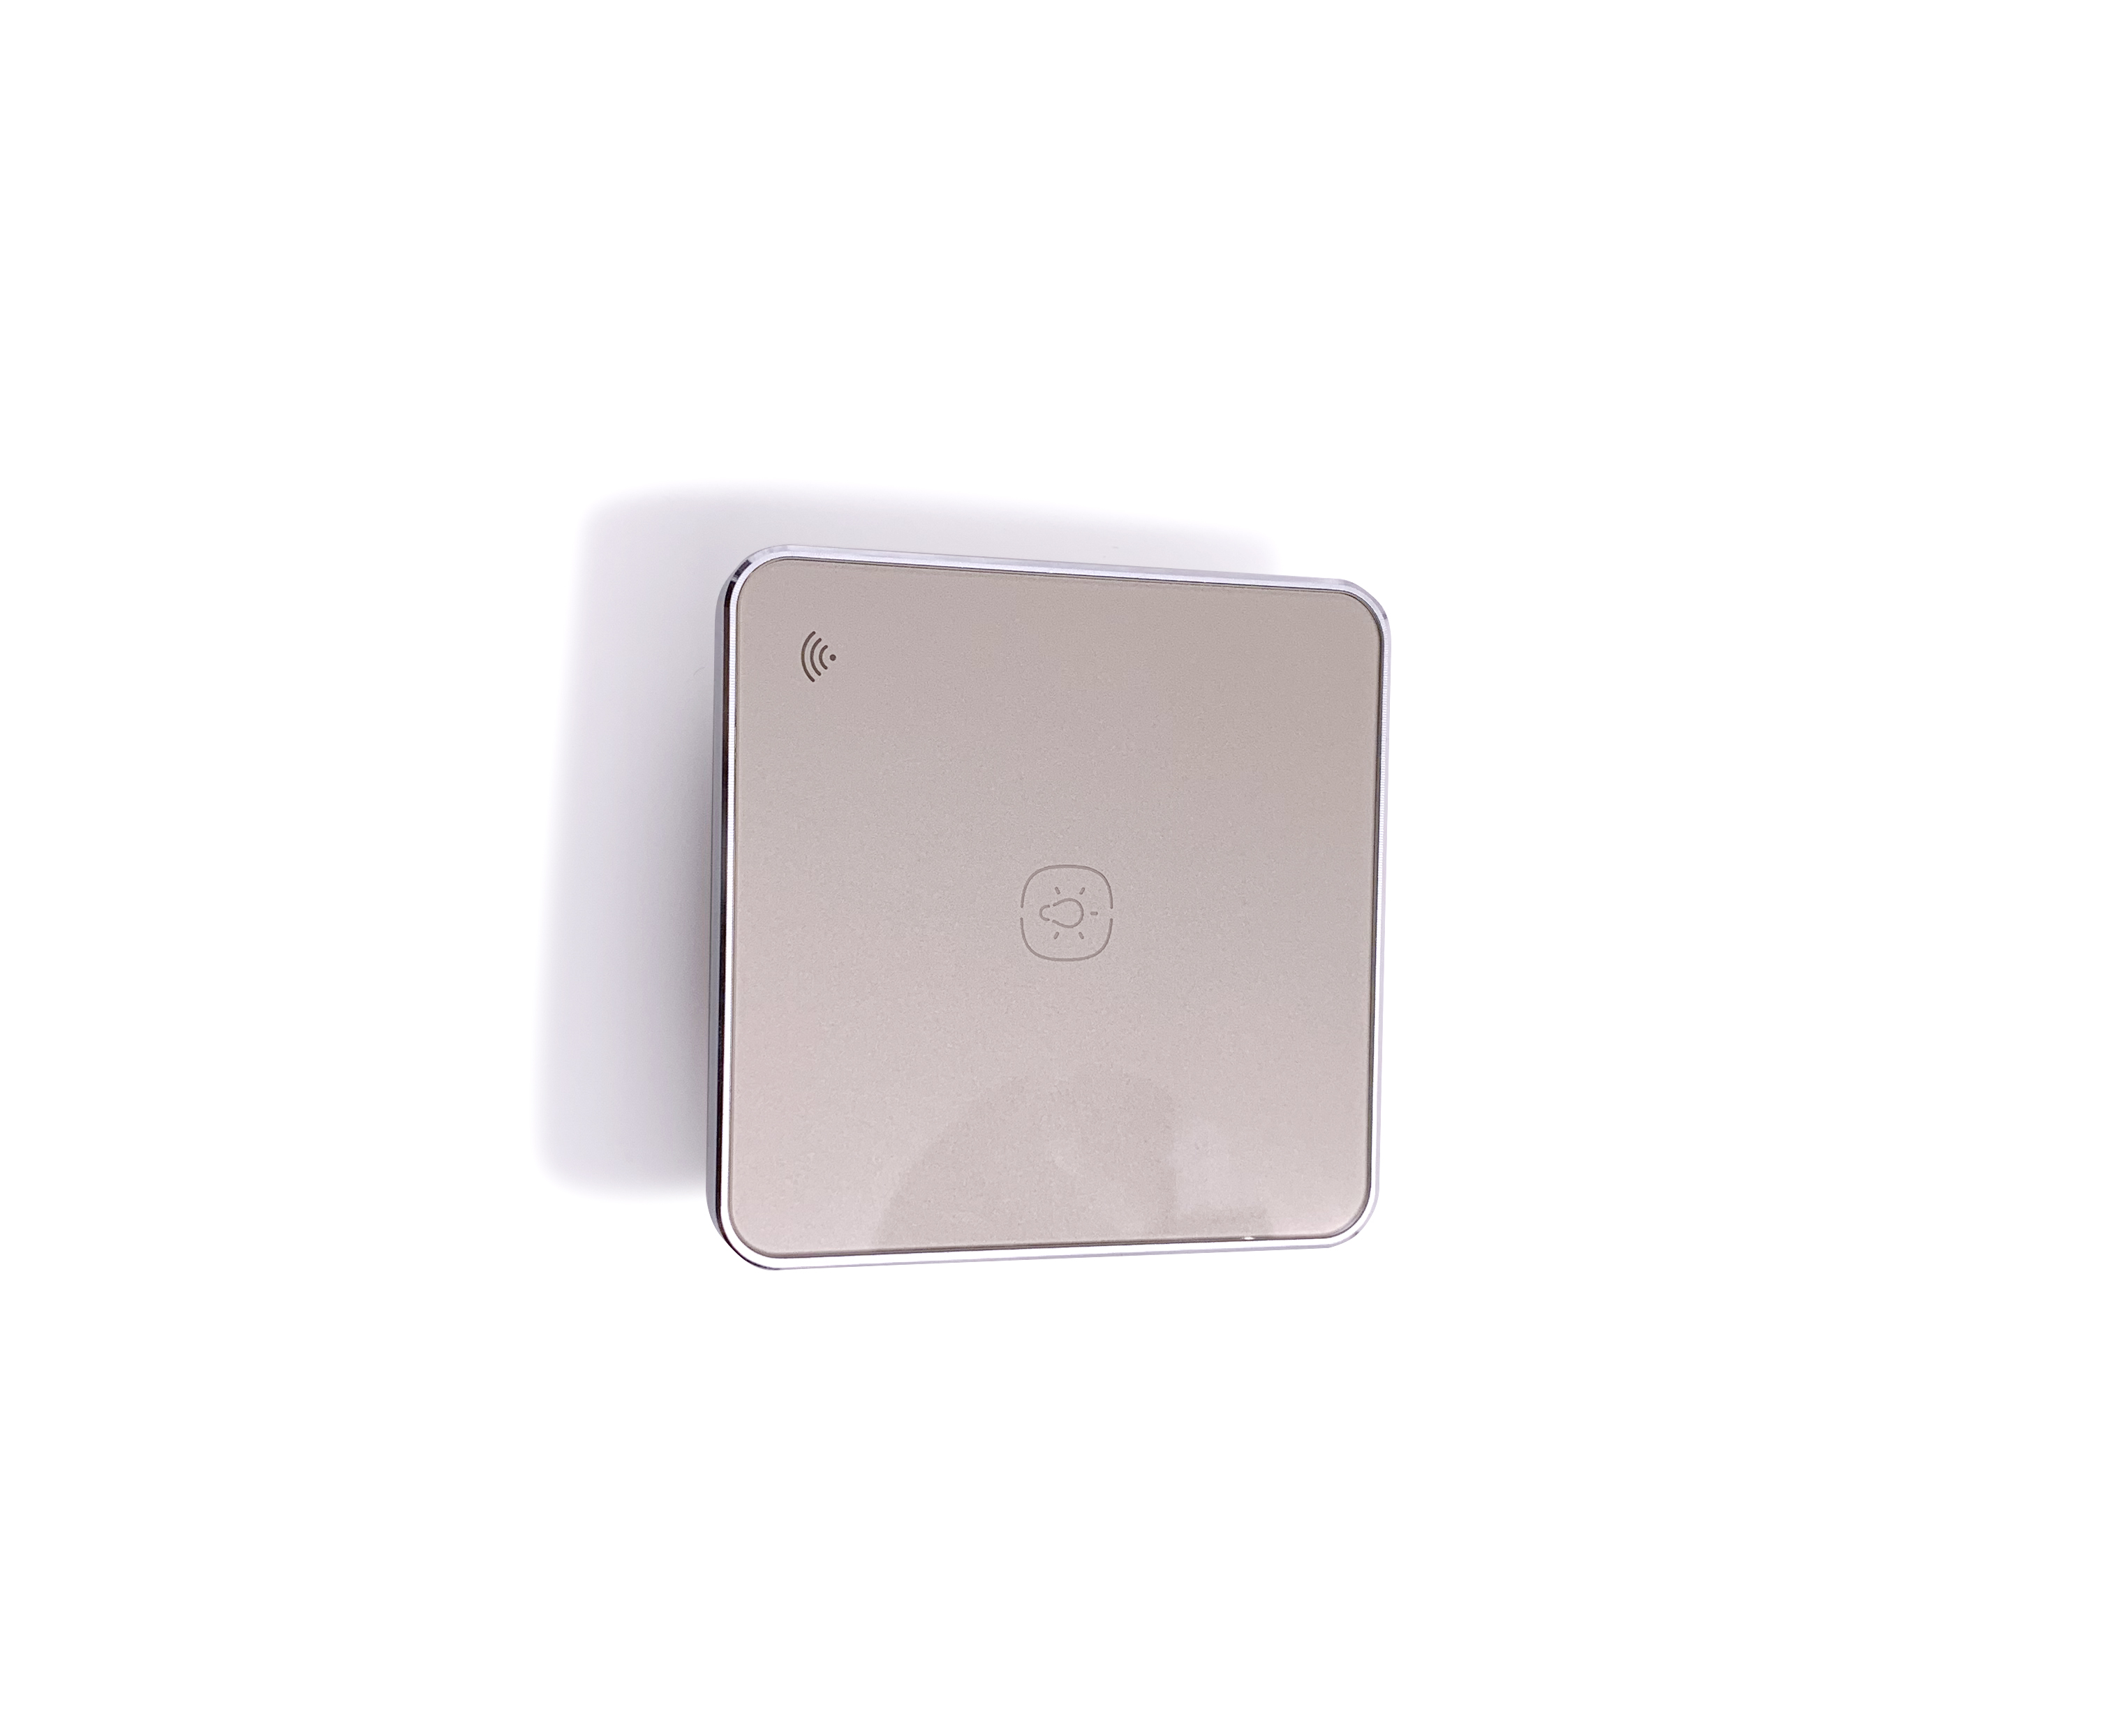 Able 13.56mhz White Hotel Mifare S50 Rfid Card Switch With Room Number And Check In Time Limit Function Energy Saver Saving Switch Security & Protection